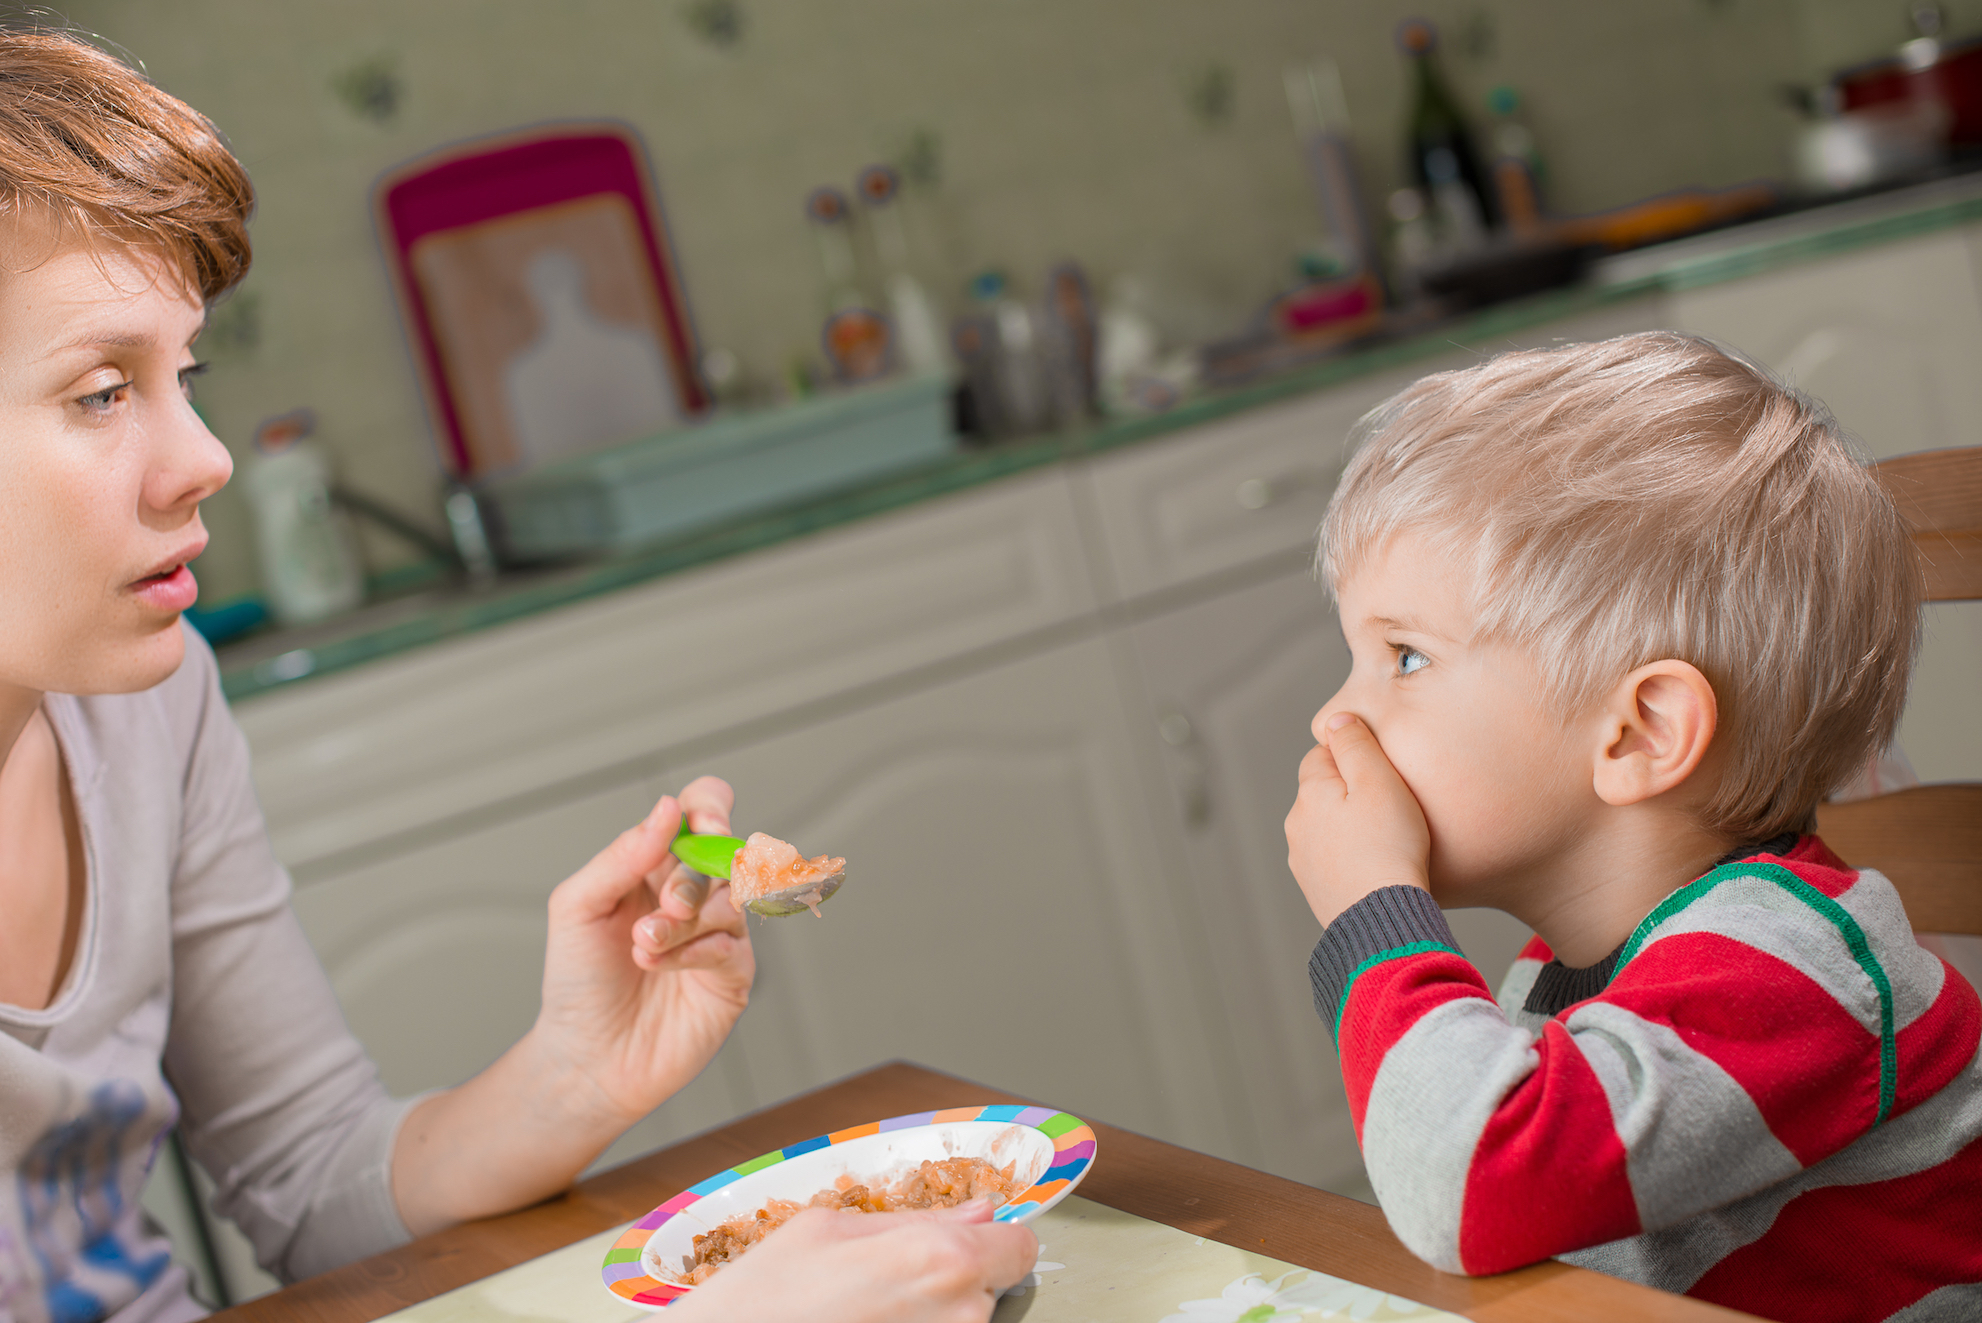 Researchers from the University of Illinois (U of I) have worked for the past ten years to better understand and qualify what exactly makes a picky eater.